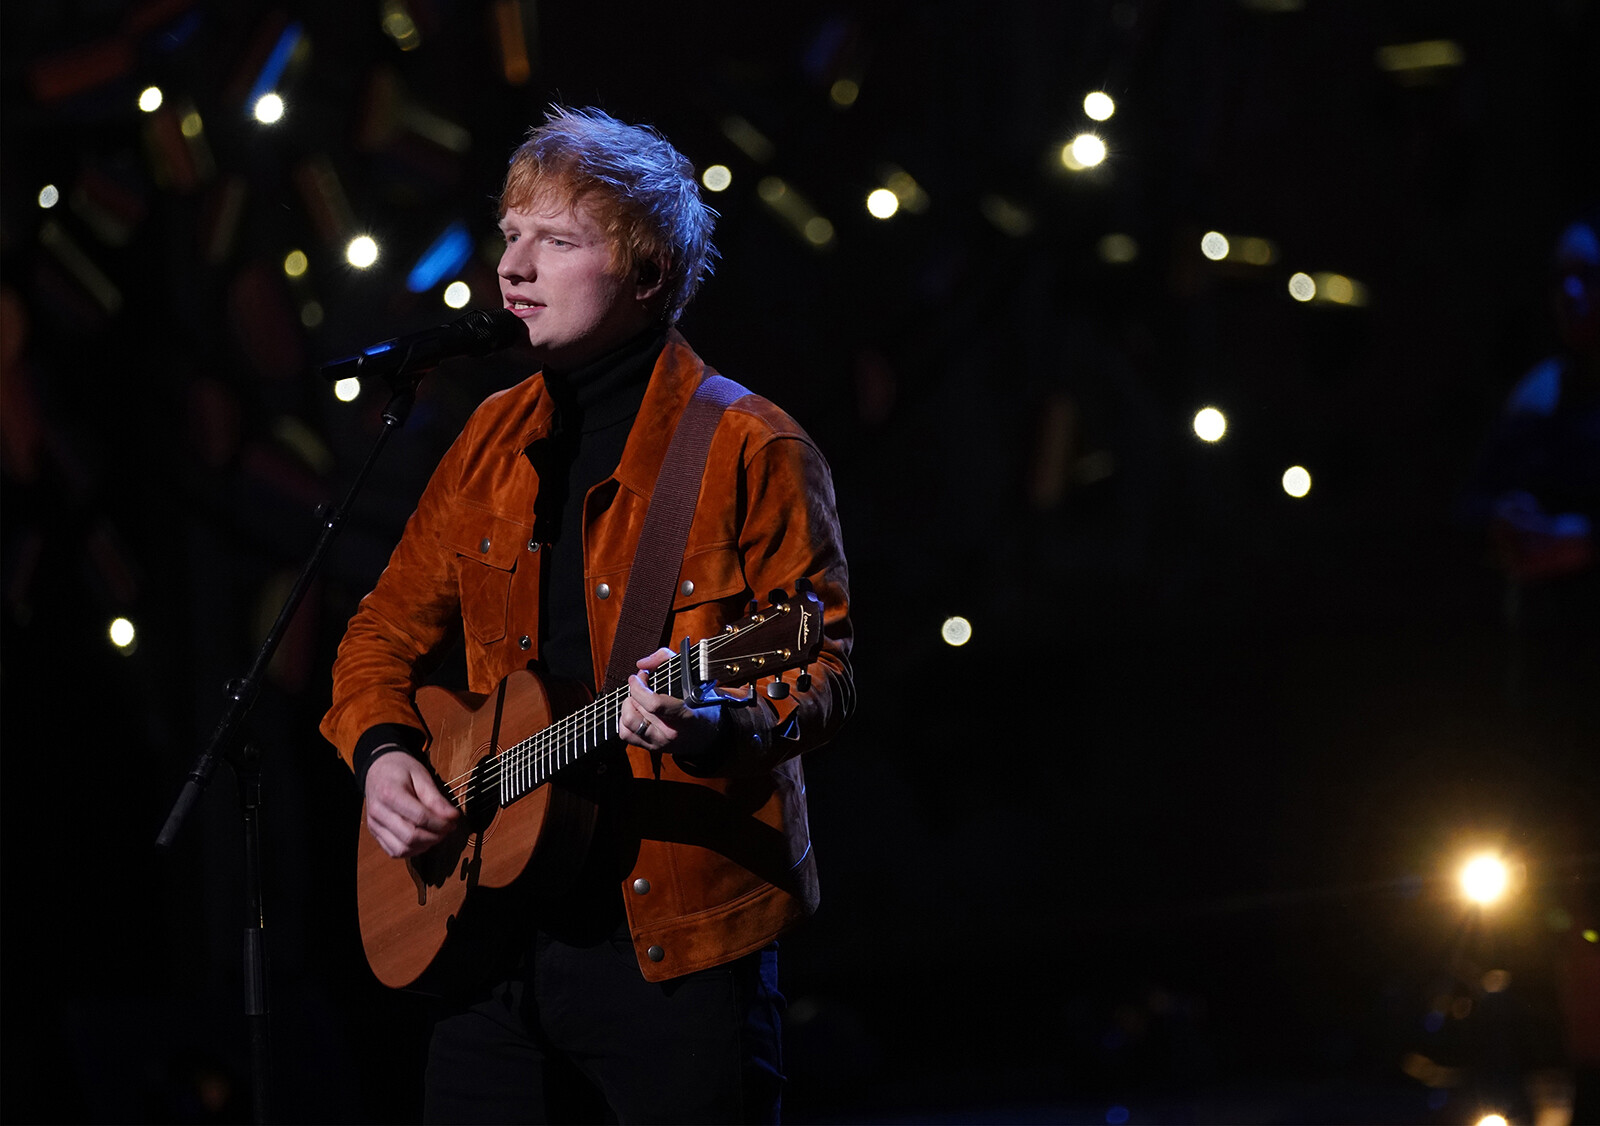 Ed Sheeran says he tested positive for Covid-19